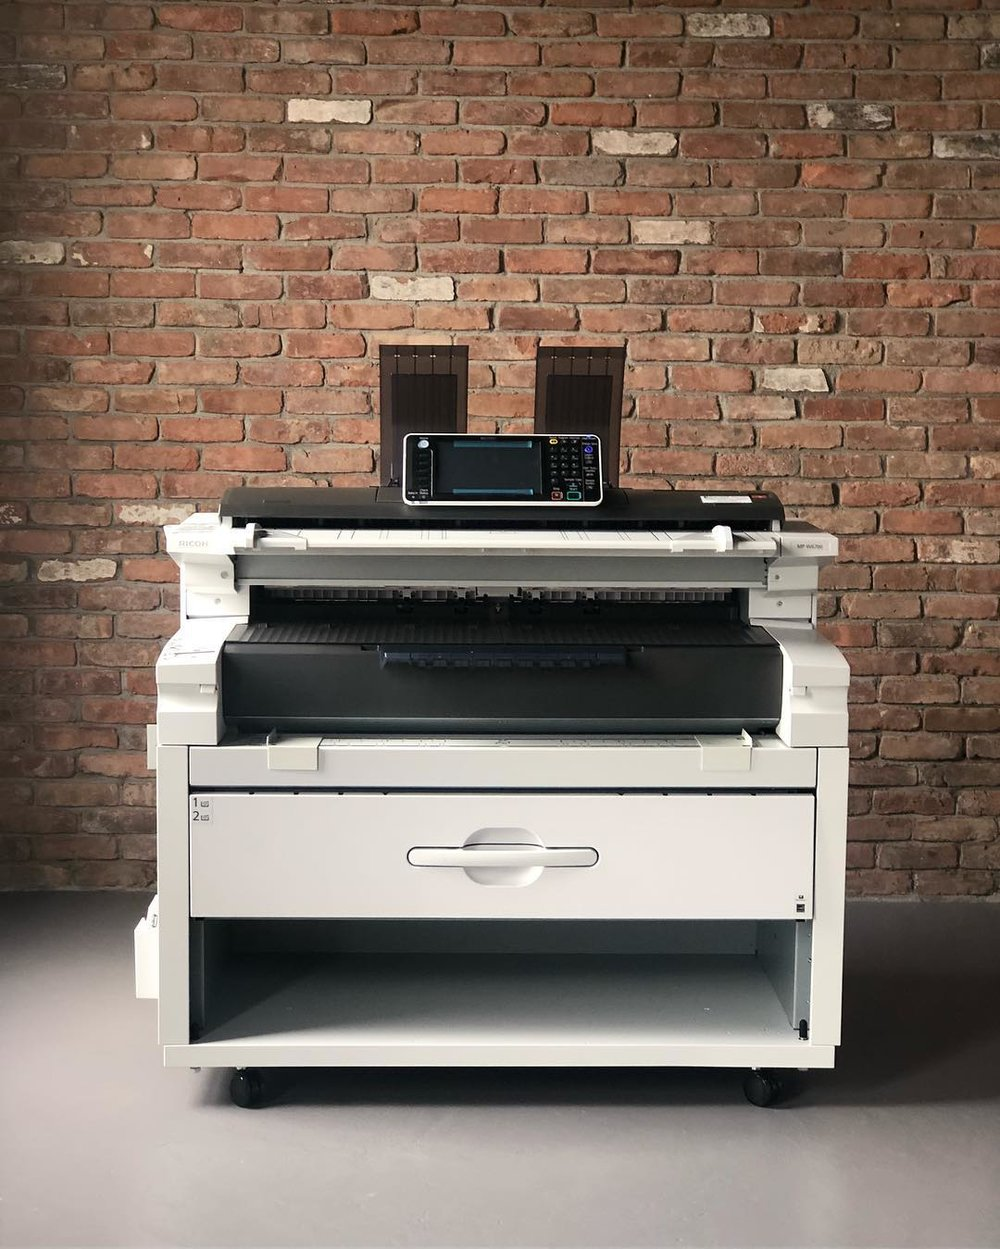 new-workspace-wide-format-plotter-long-island